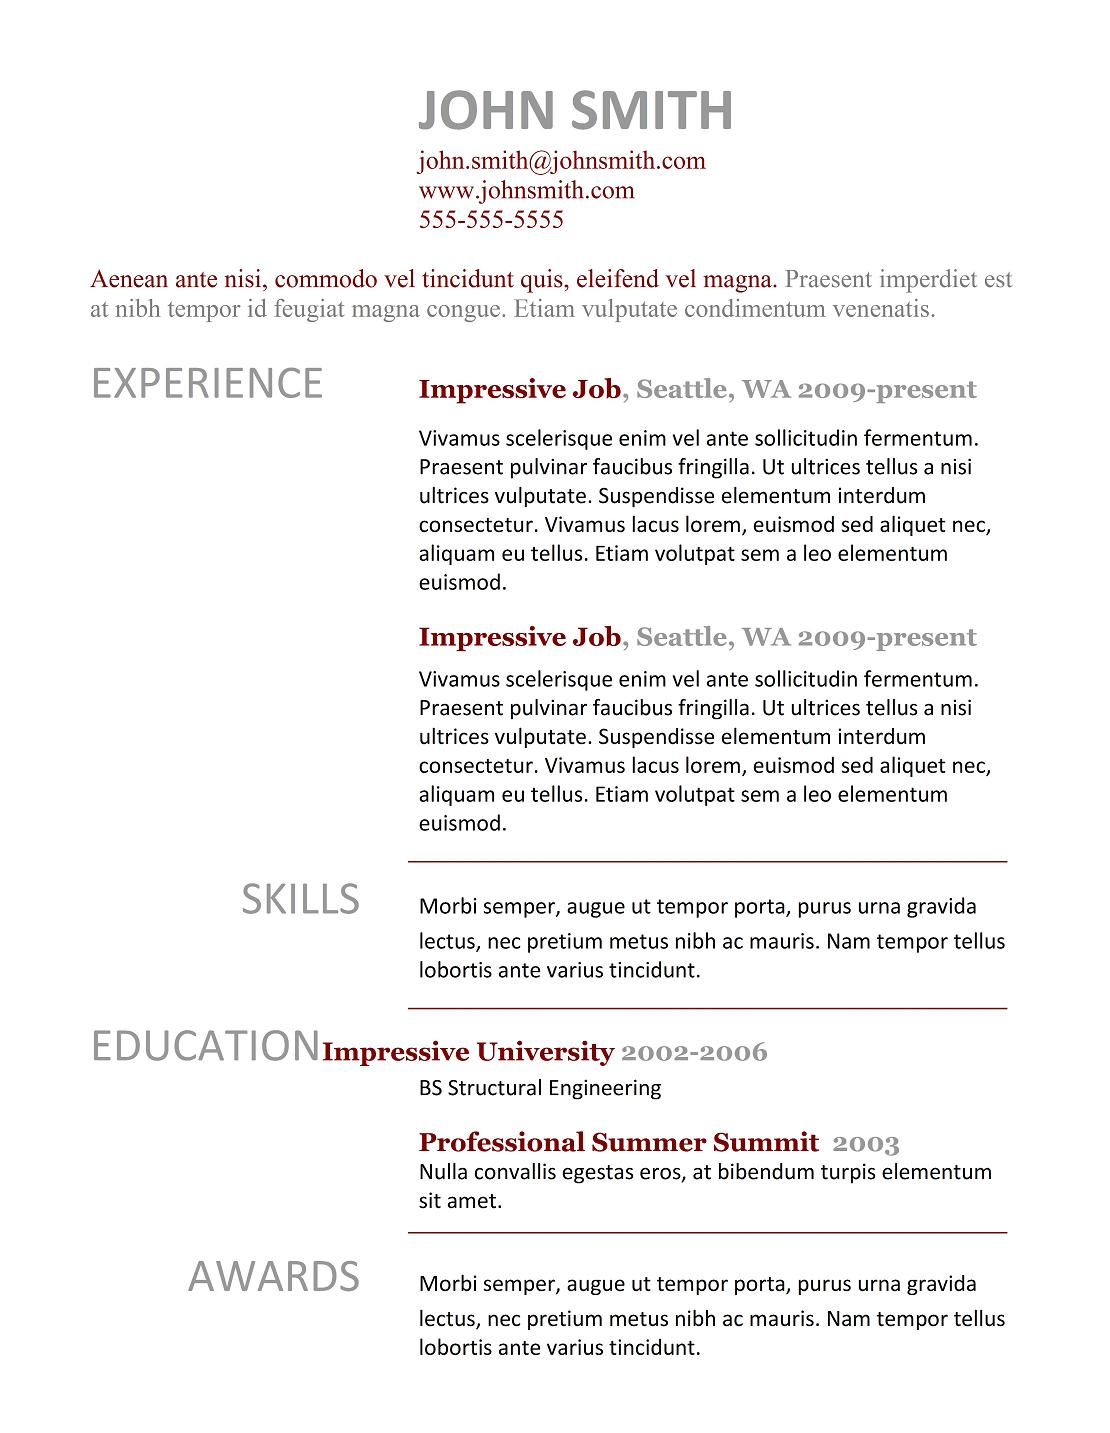 9 best free resume templates download for freshers - Free Resume Examples For Jobs